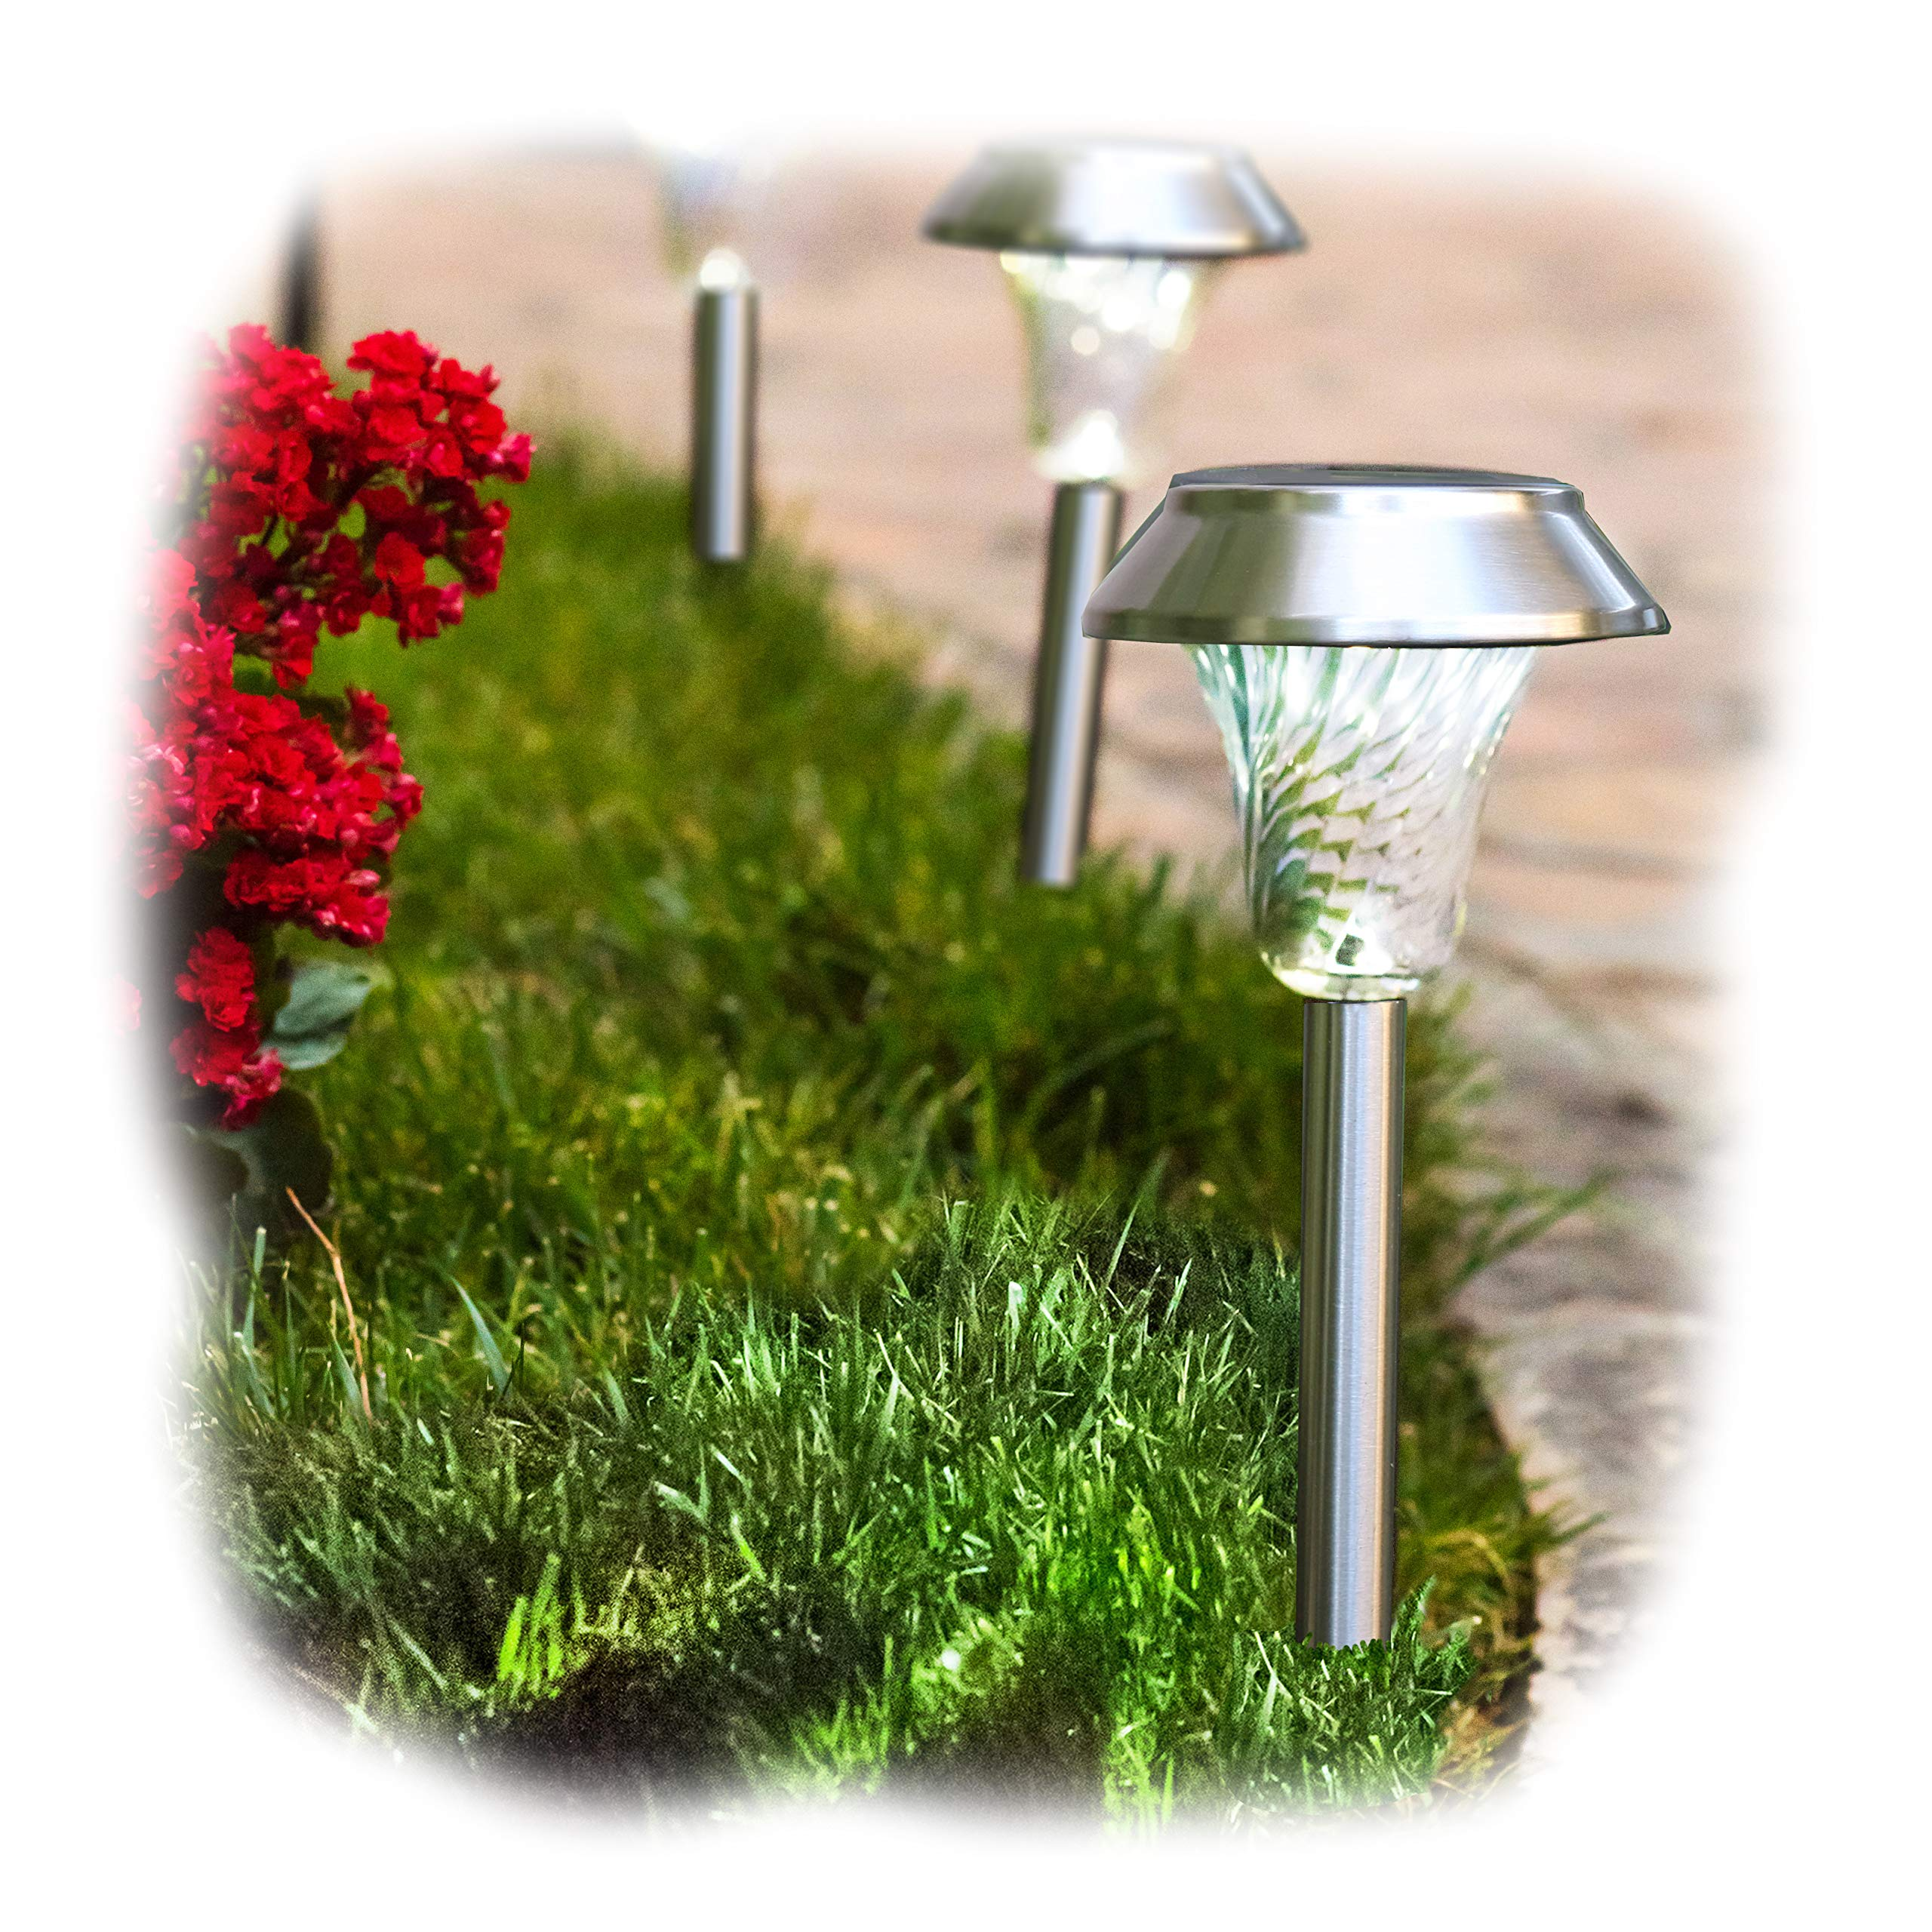 Enchanted Spaces Silver Solar Path Light, Set of 6, with Glass Lens, Metal Ground Stake, and Extra-Bright LED by Enchanted Spaces